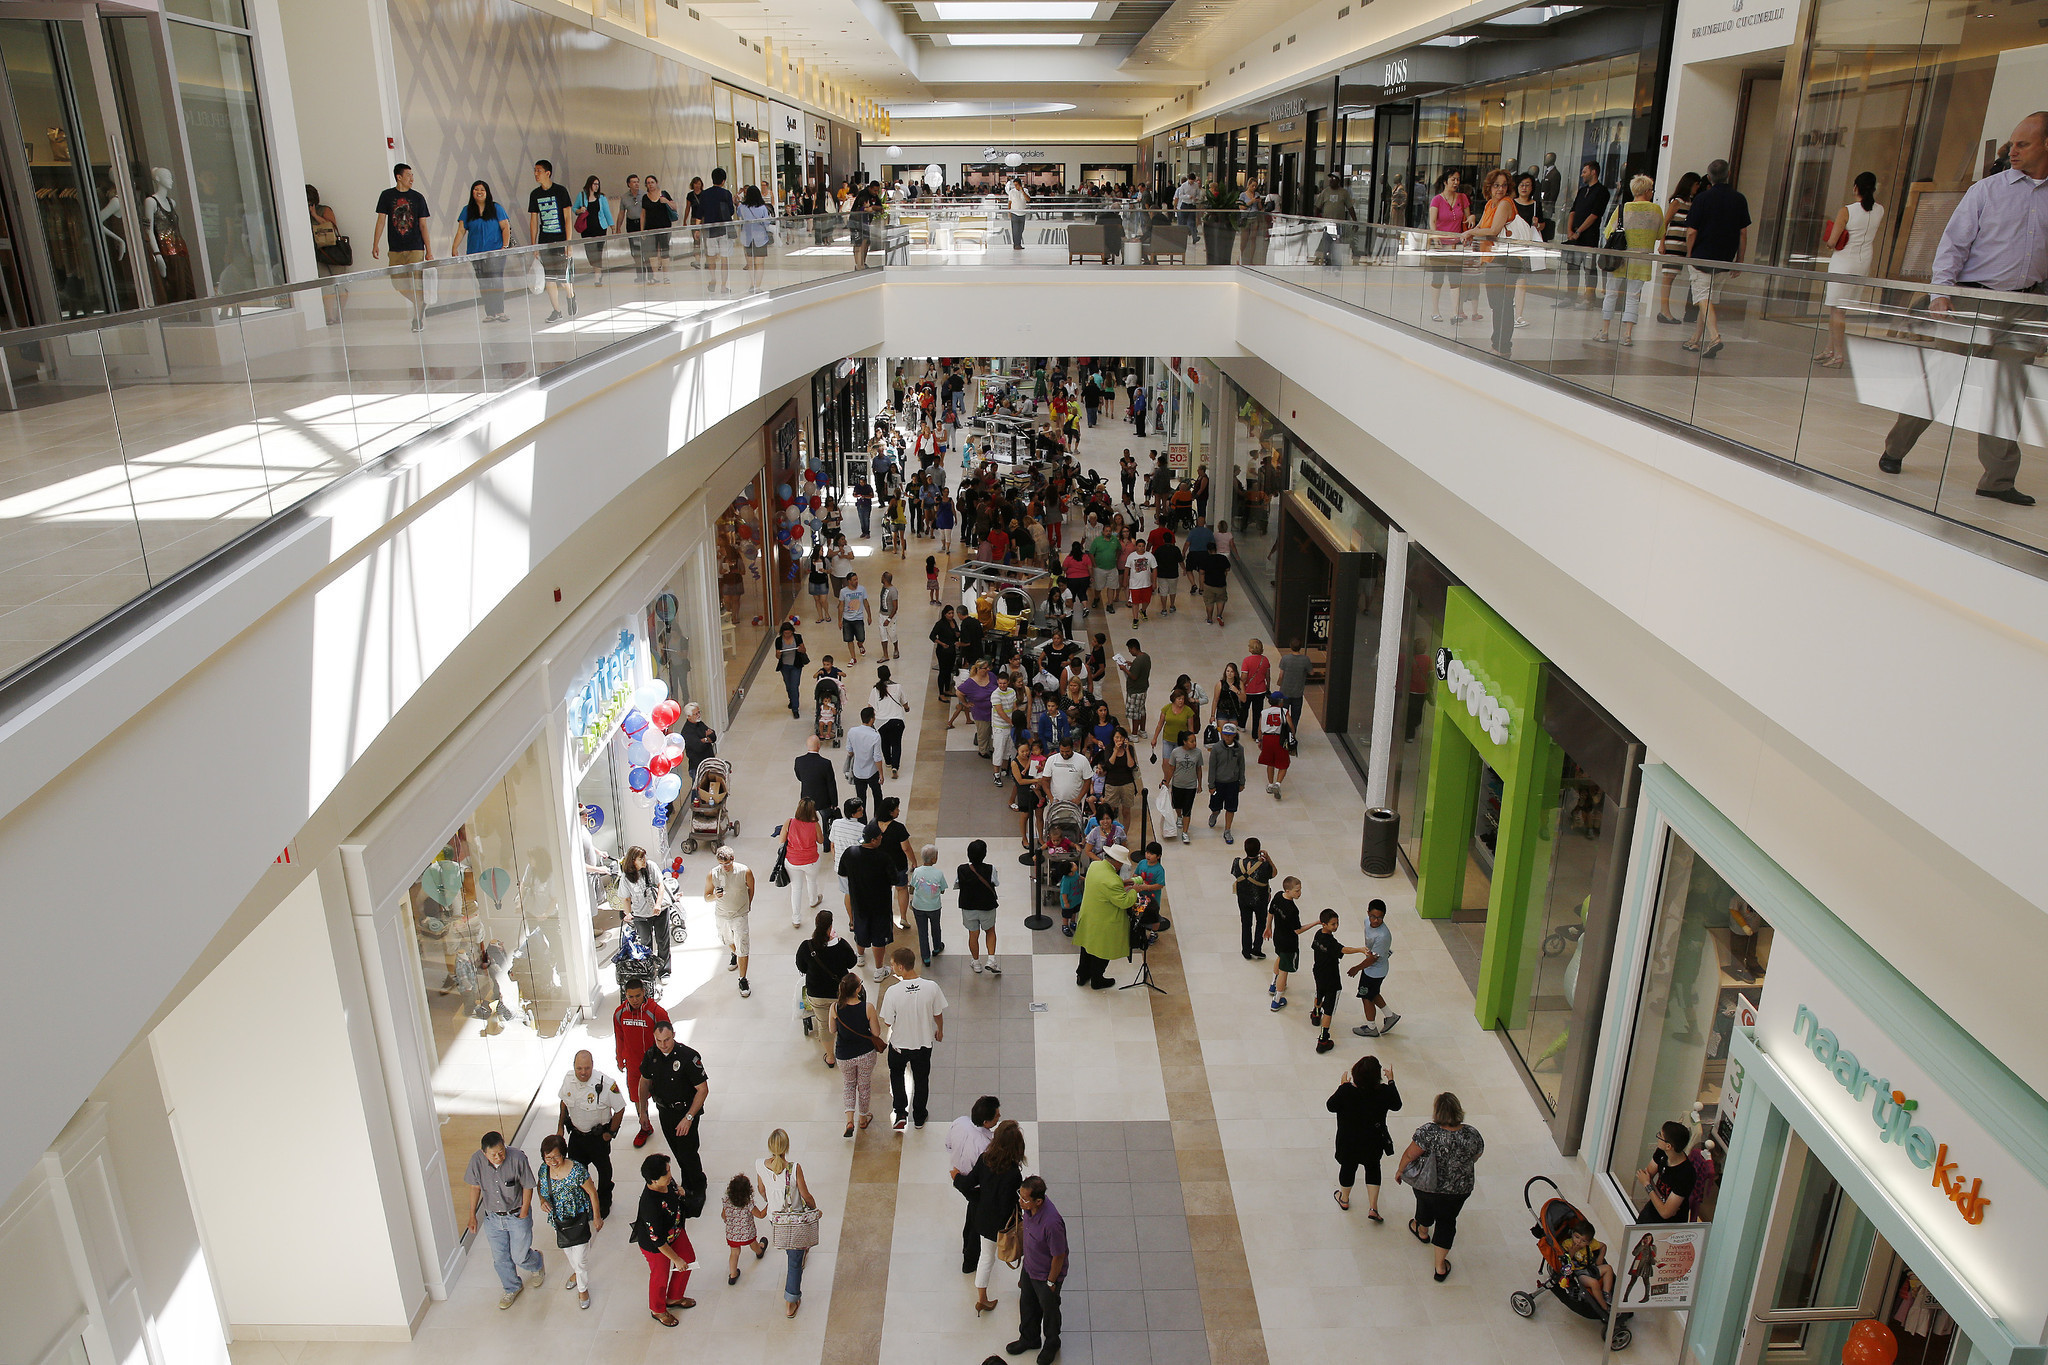 04022ea58e0 Fashion update  New stores at the Fashion Outlets of Chicago - Chicago  Tribune